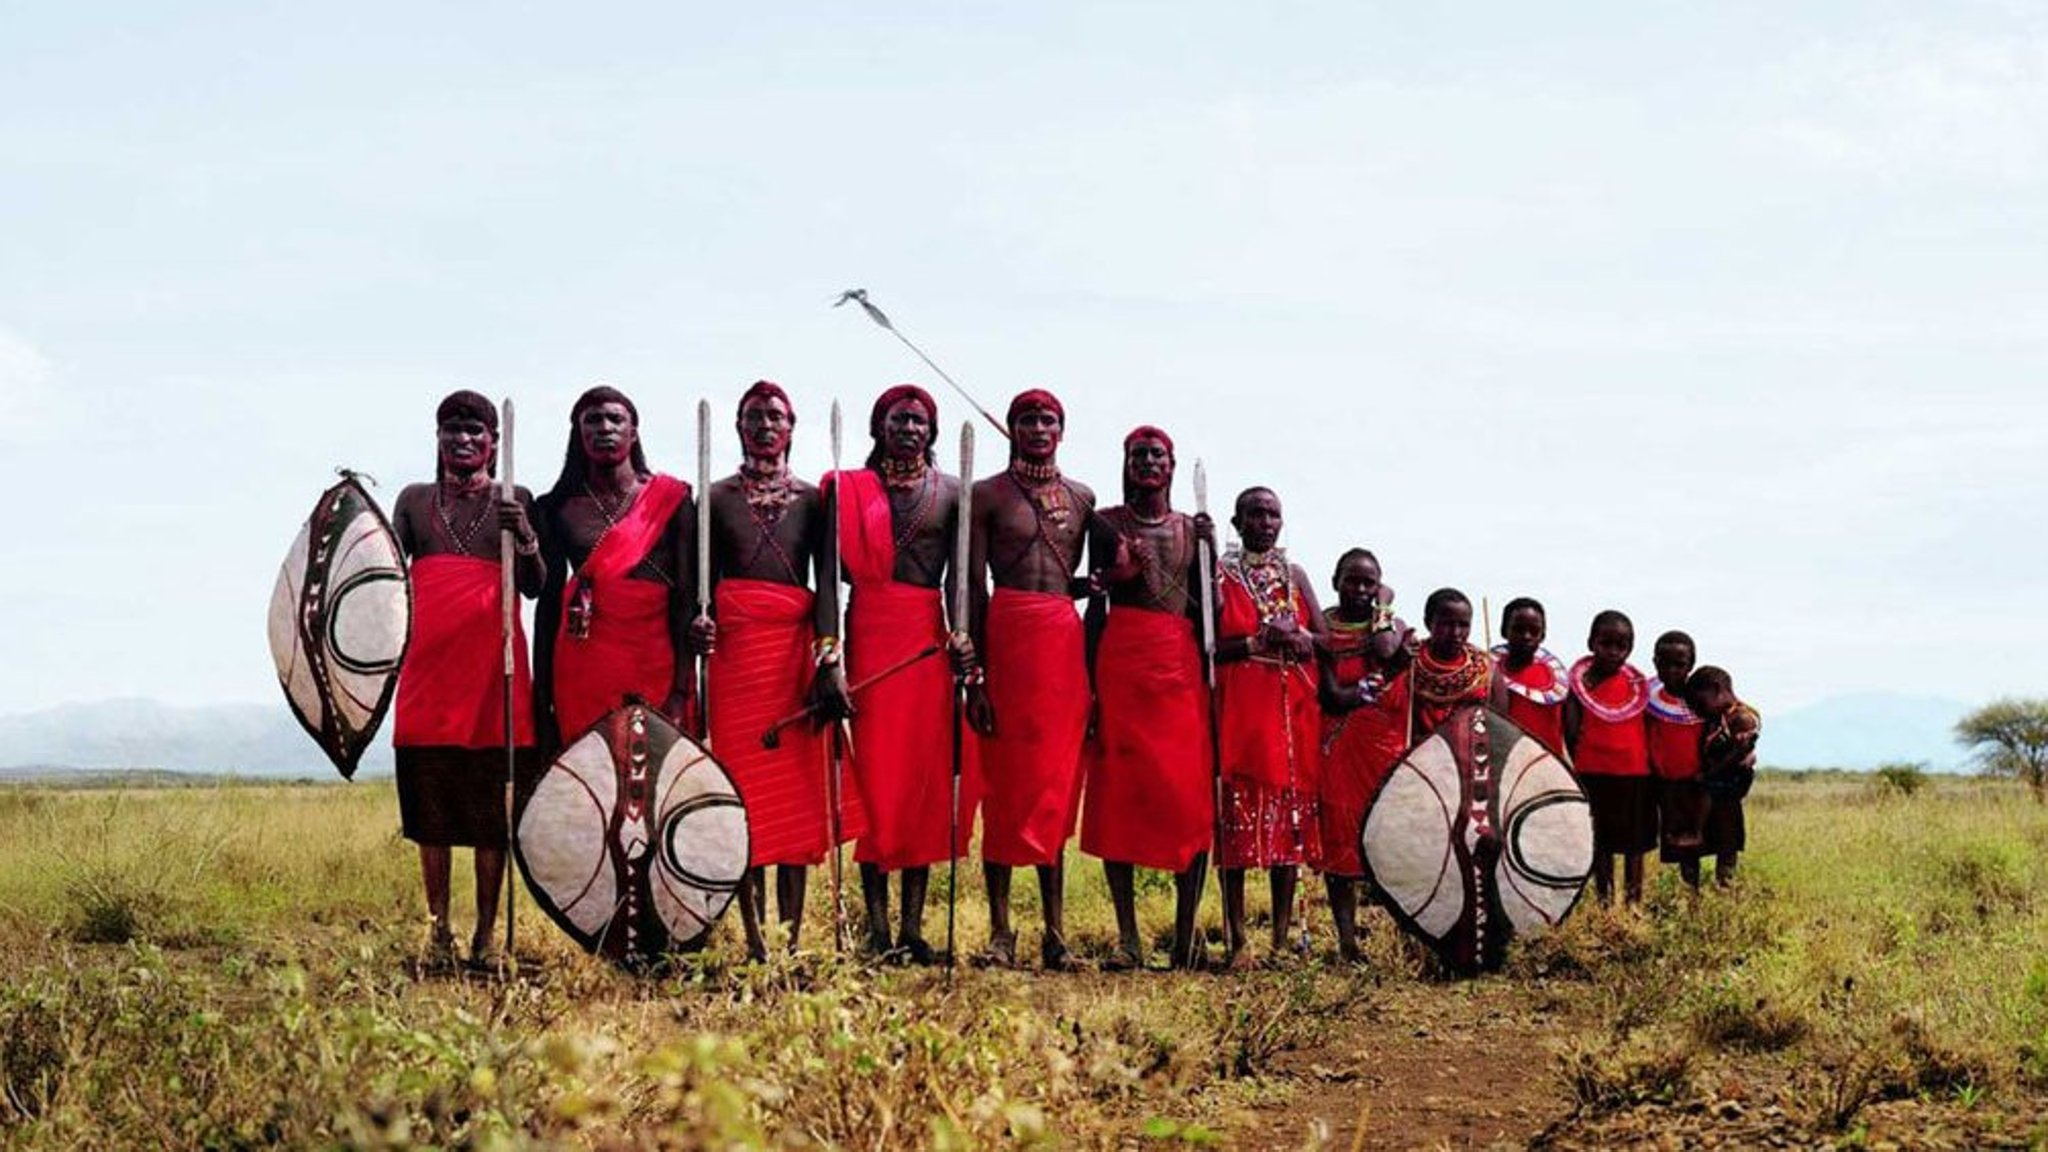 Maasai warriors fight to protect their 'brand'